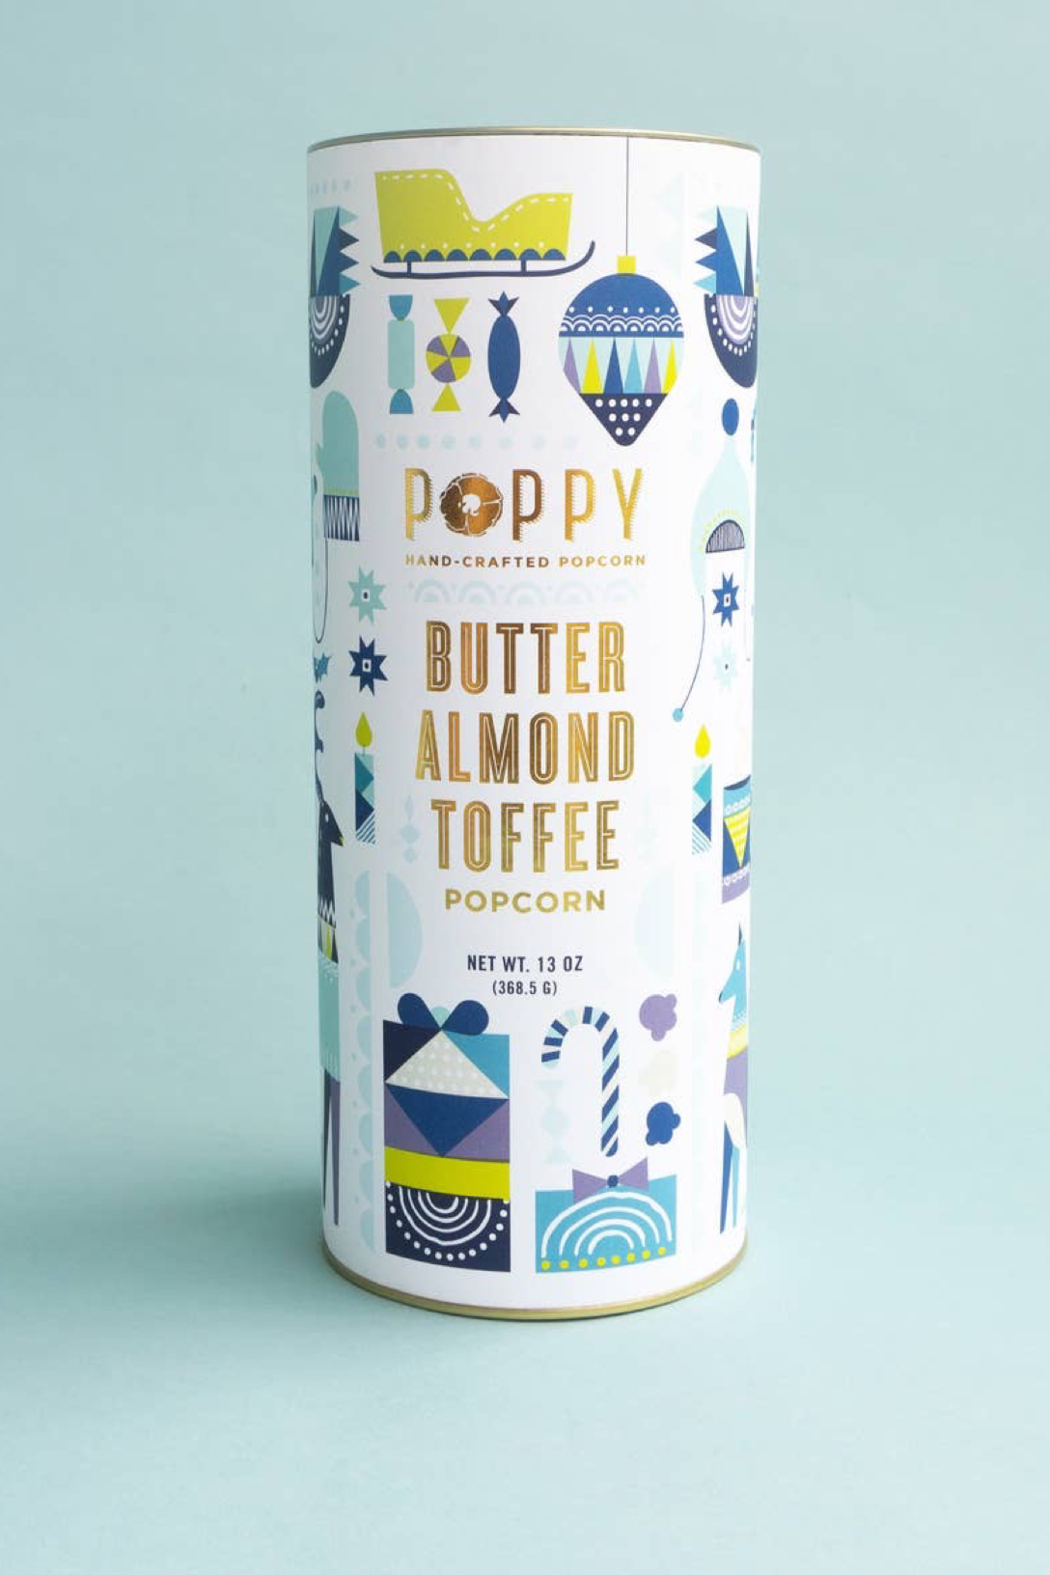 Poppy Handcrafted Popcorn Butter Almond Toffee Popcorn Cylinder - Main Image